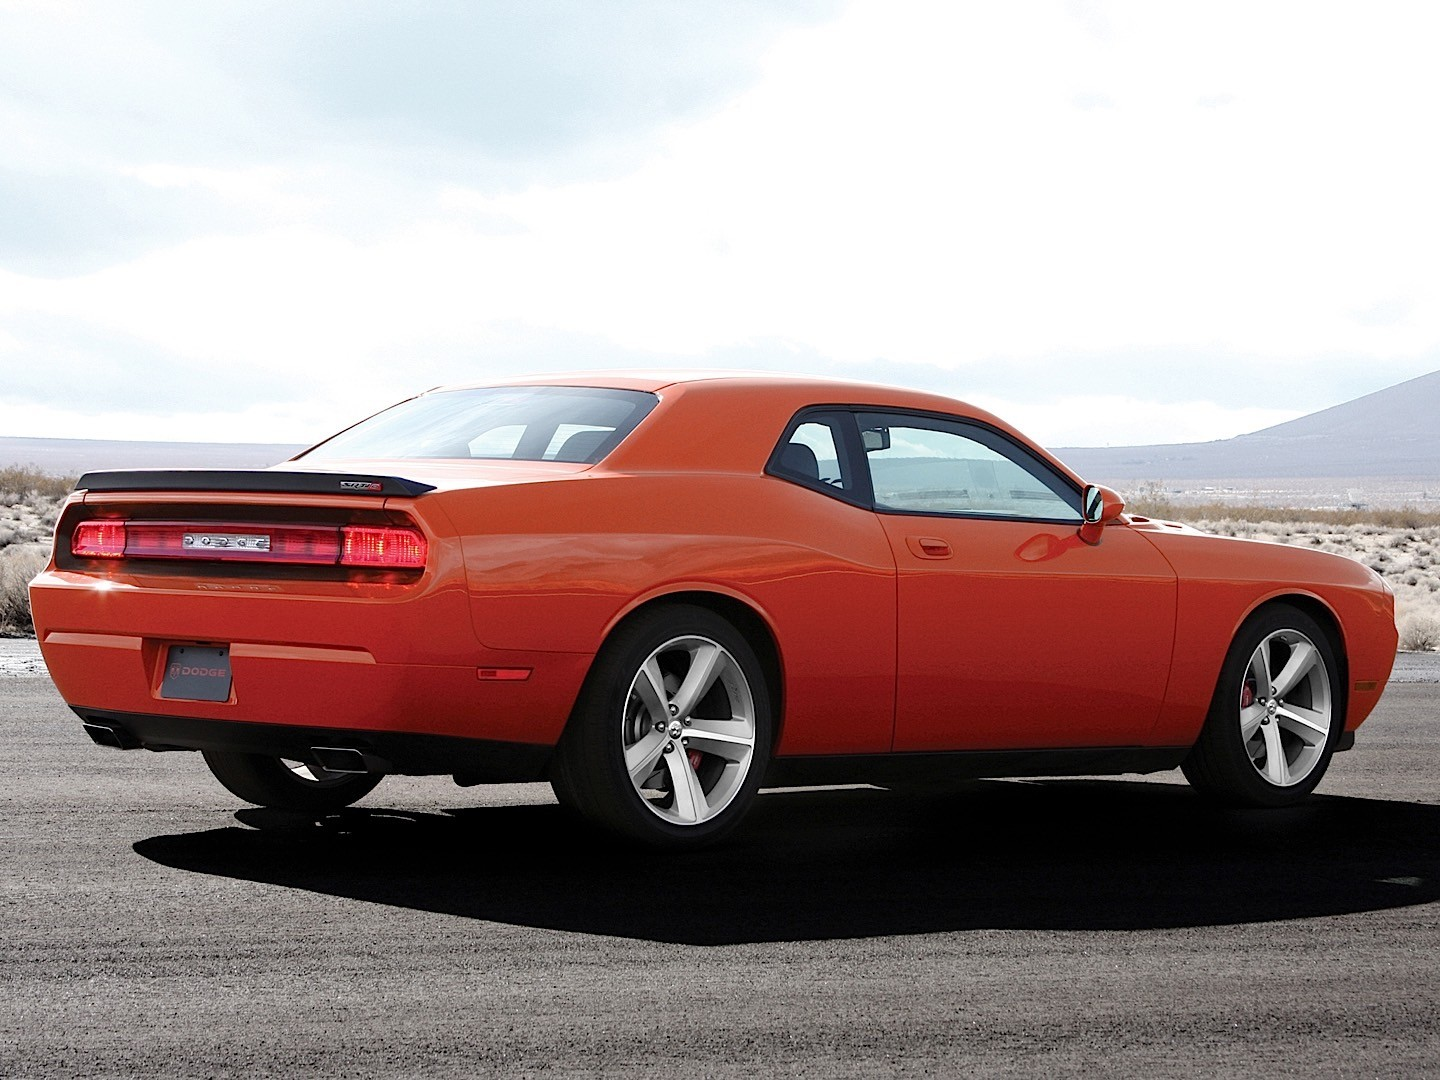 dodge challenger srt8 specs 2008 2009 2010 2011 2012 2013. Cars Review. Best American Auto & Cars Review